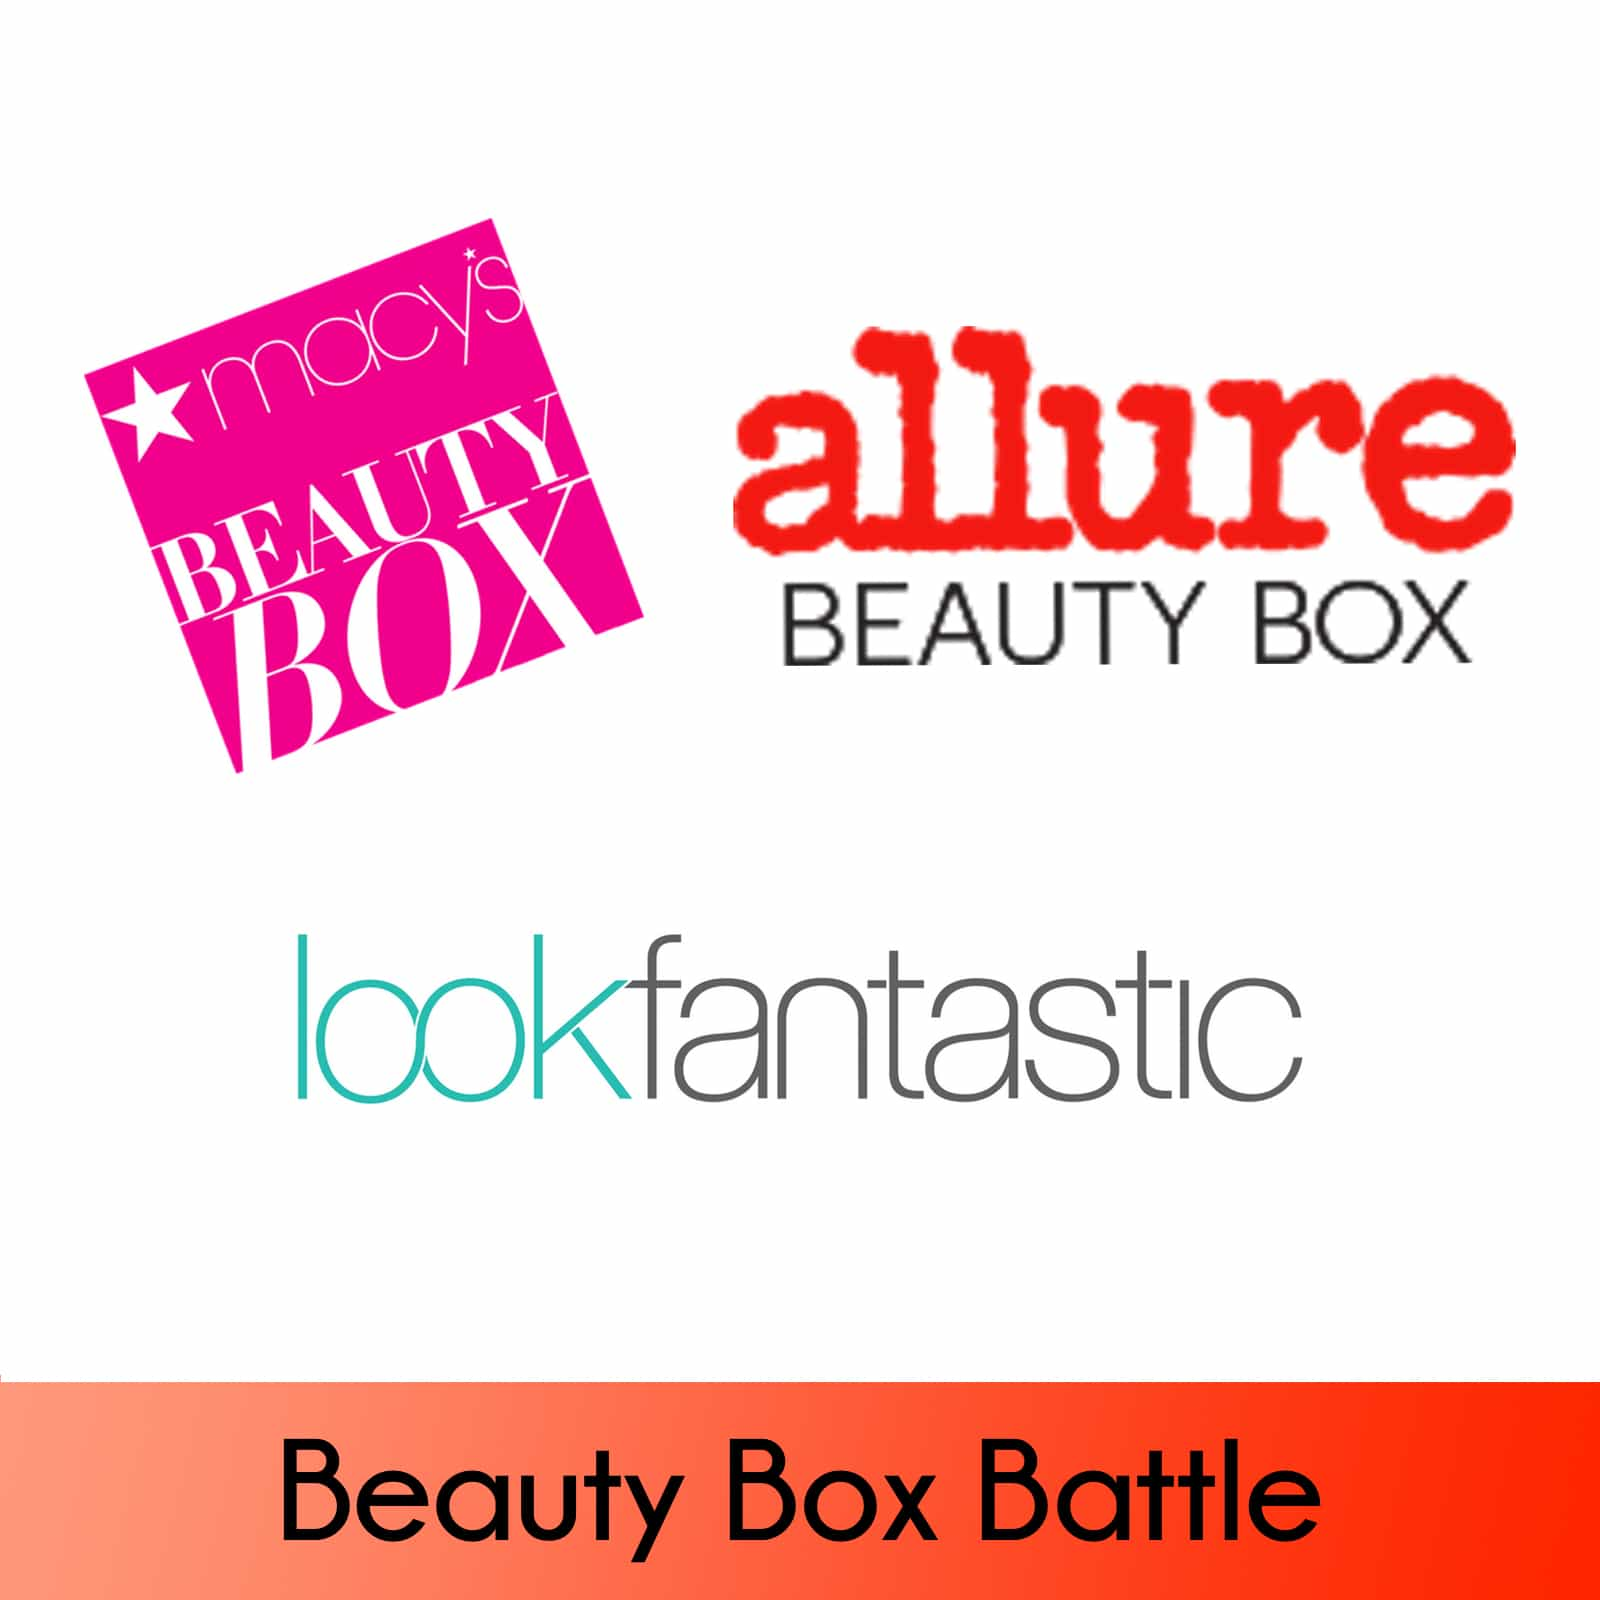 Macy's Beauty Box vs Allure Beauty Box vs Lookfantastic June 2018 $15 Beauty Boxes!